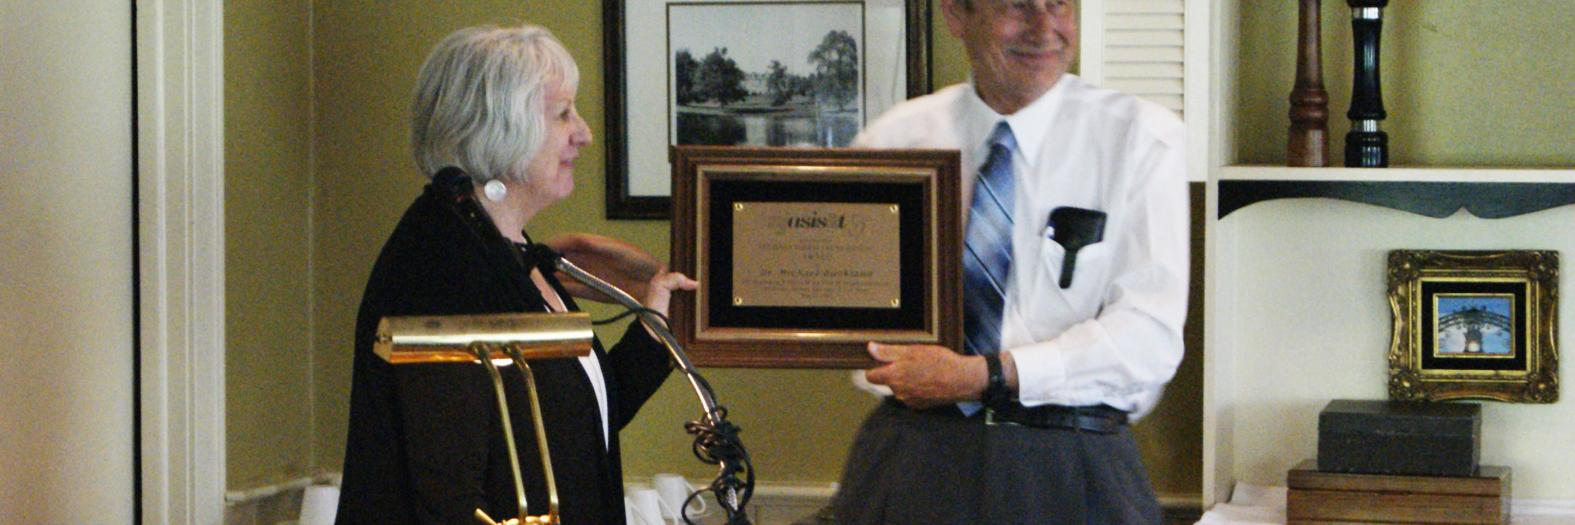 Rutgers dean Claire McInerney presents the Distinguished Lectureship award to Michael Buckland